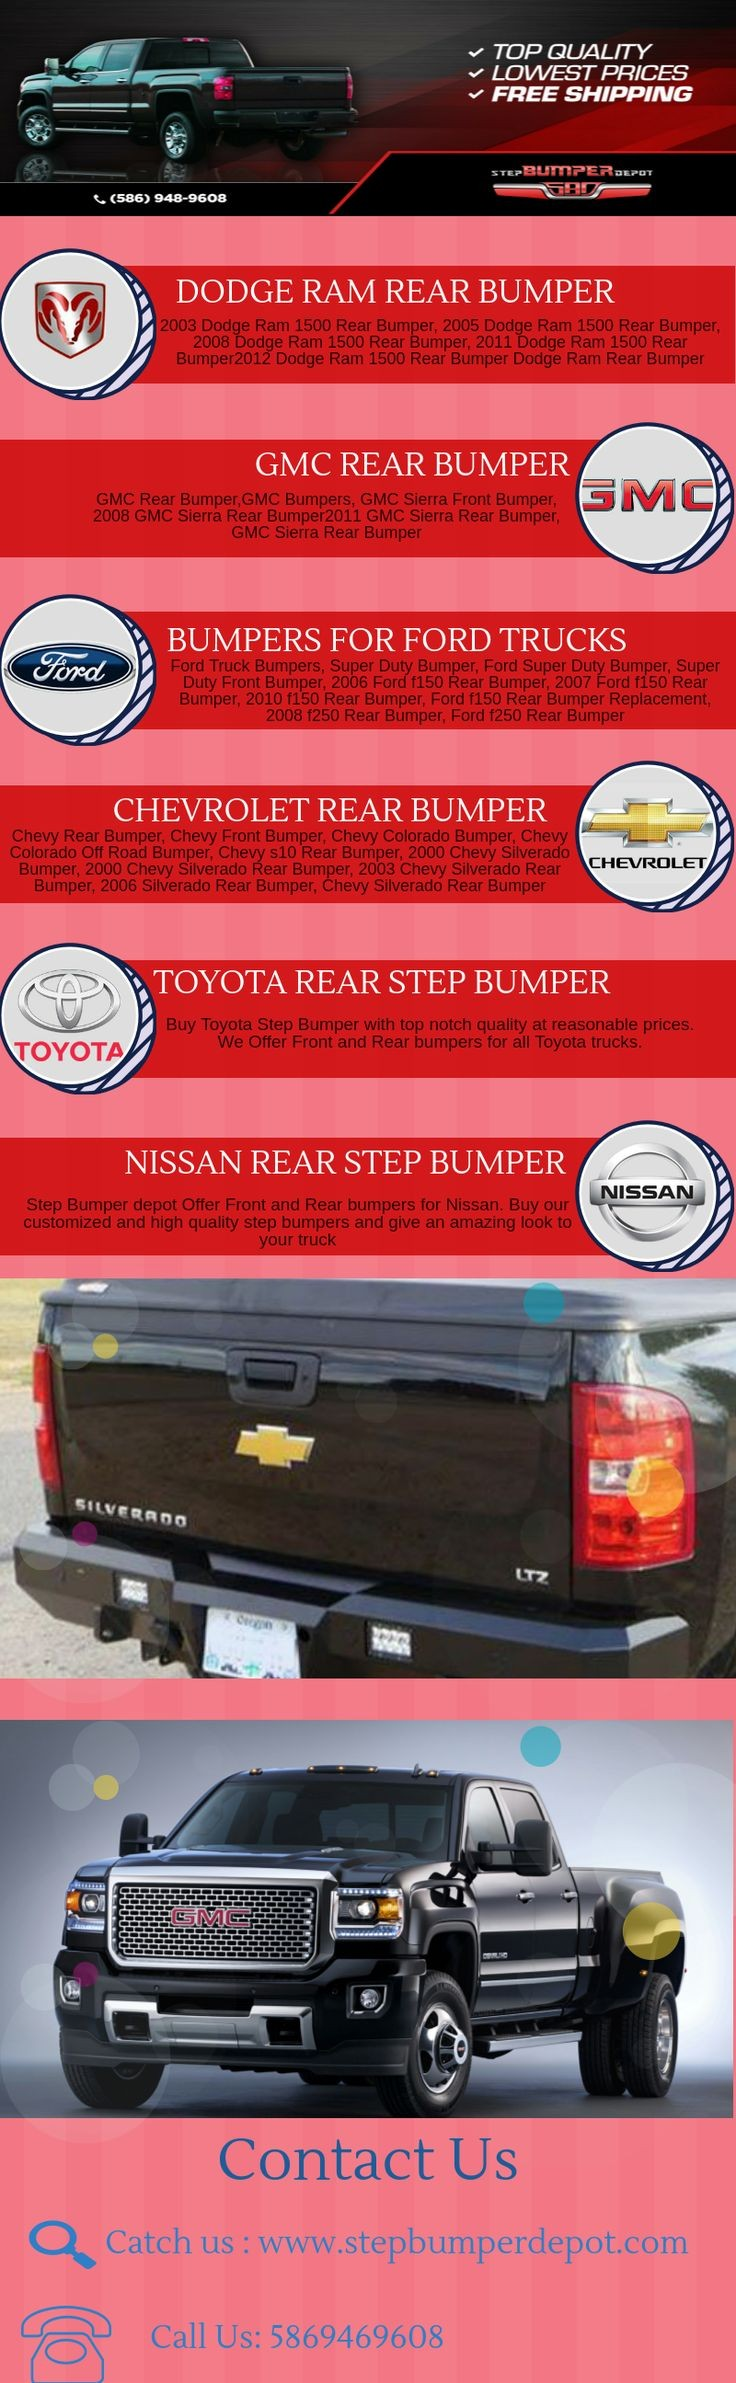 Looking for Step bumpers for your truck Get rear front bumpers step bumpers